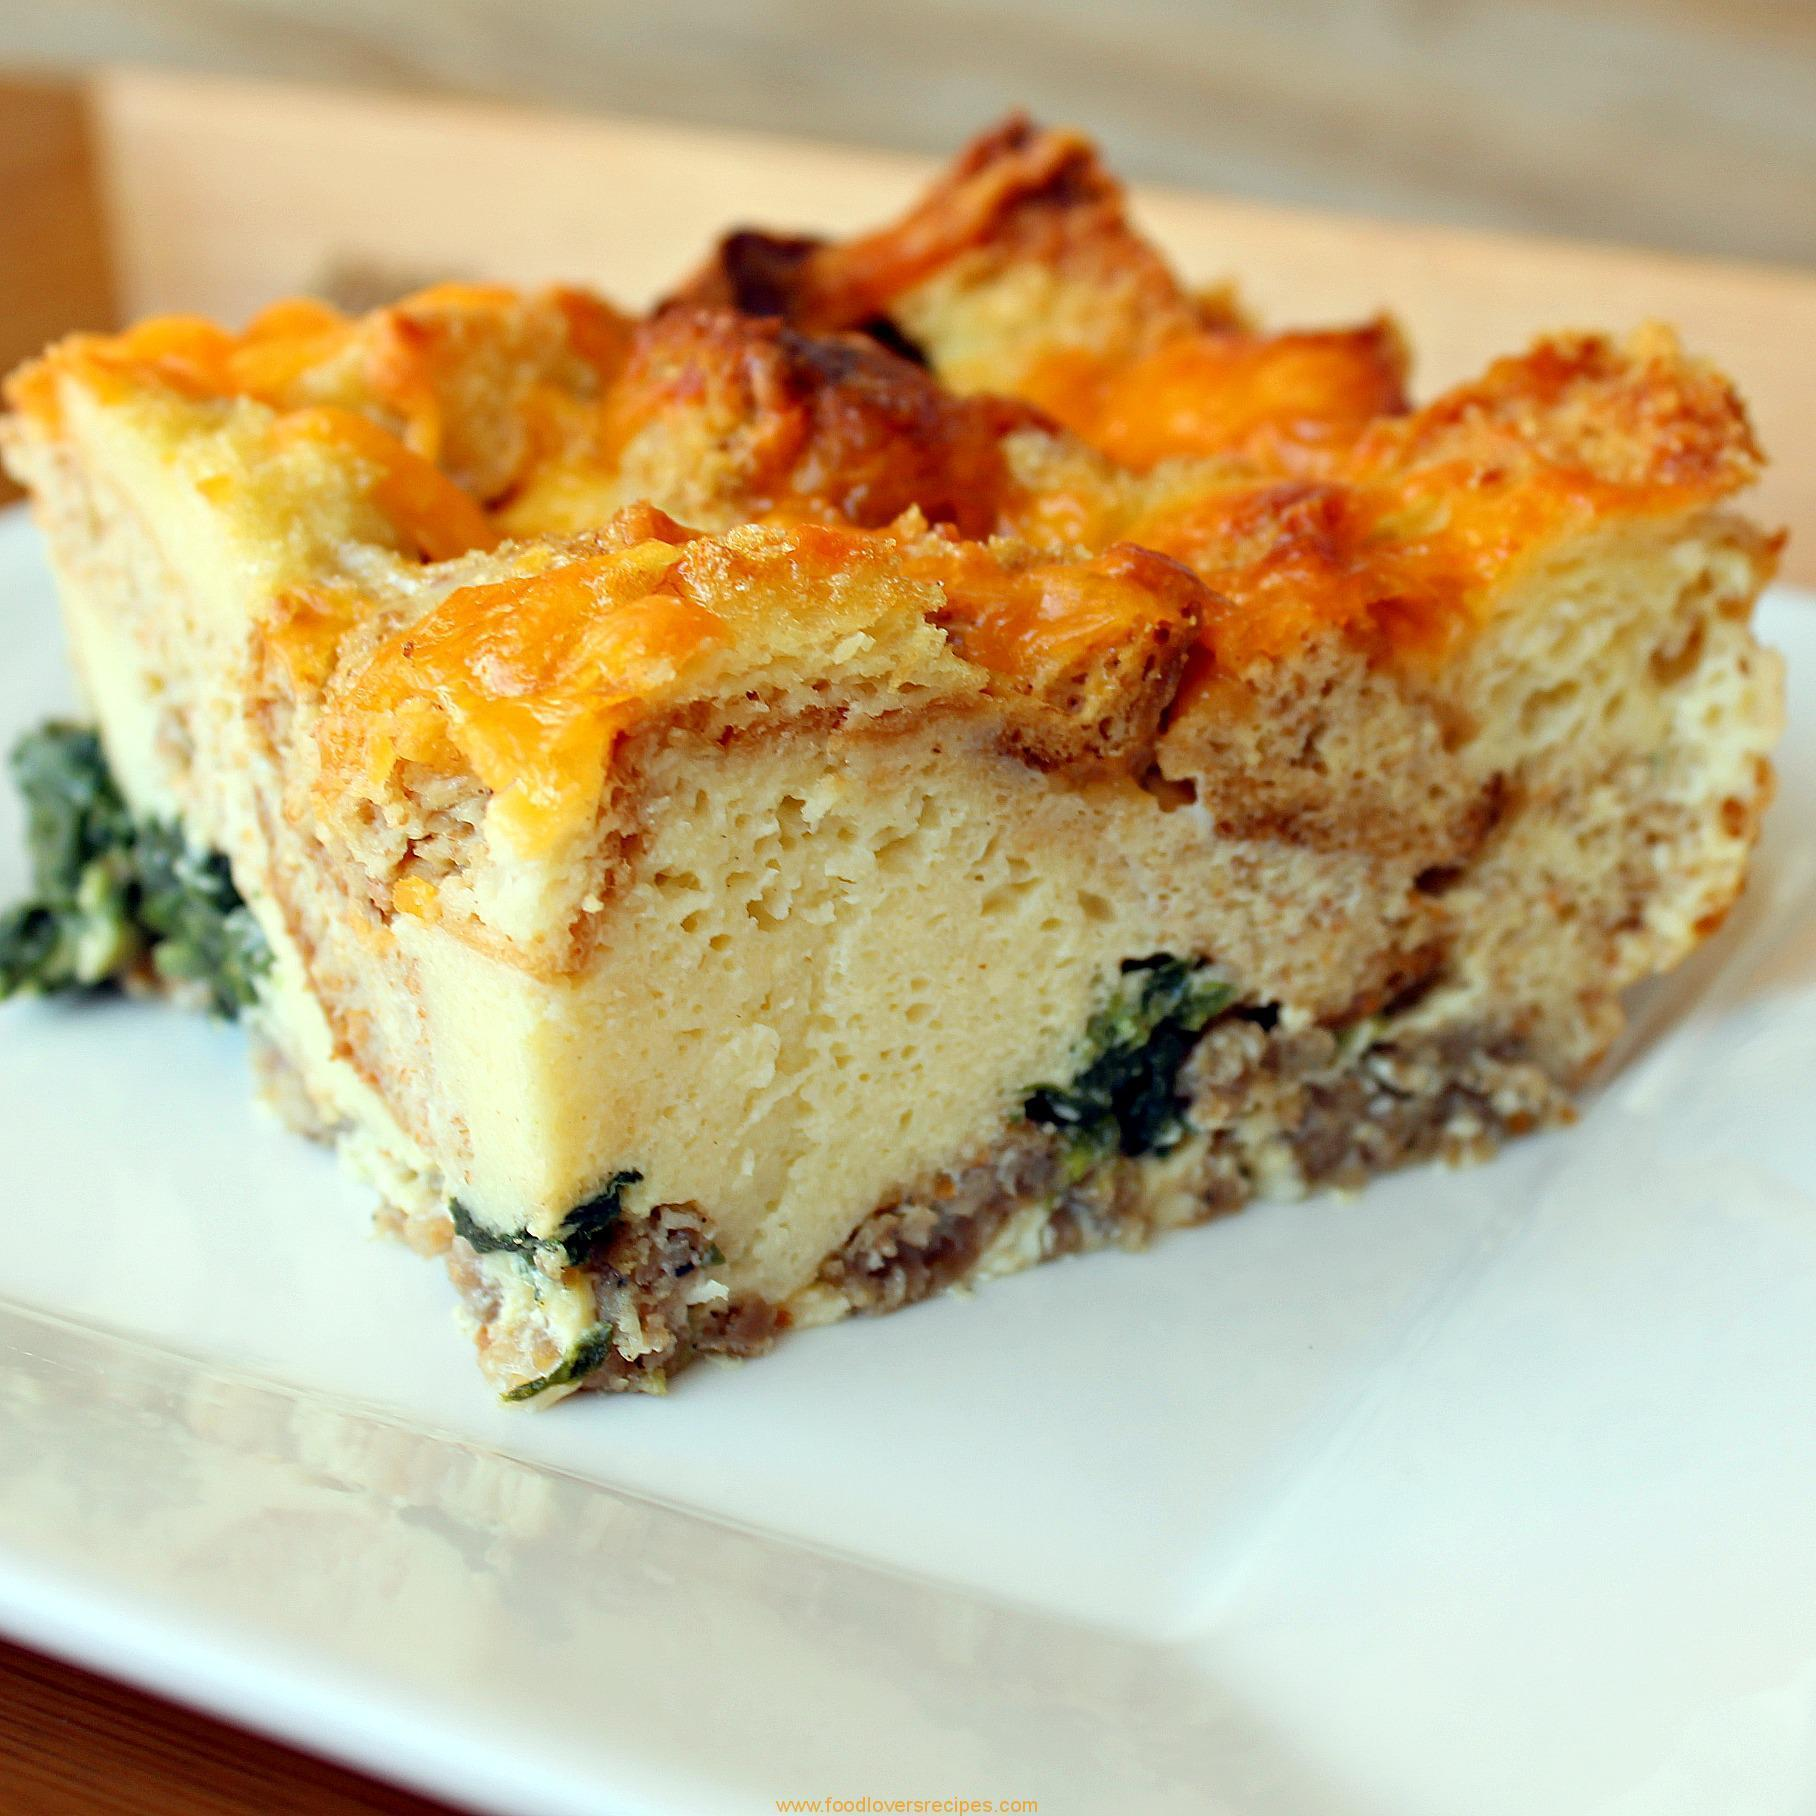 BREAKFAST CASSEROLE WITH SAUSAGE AND SPINACH